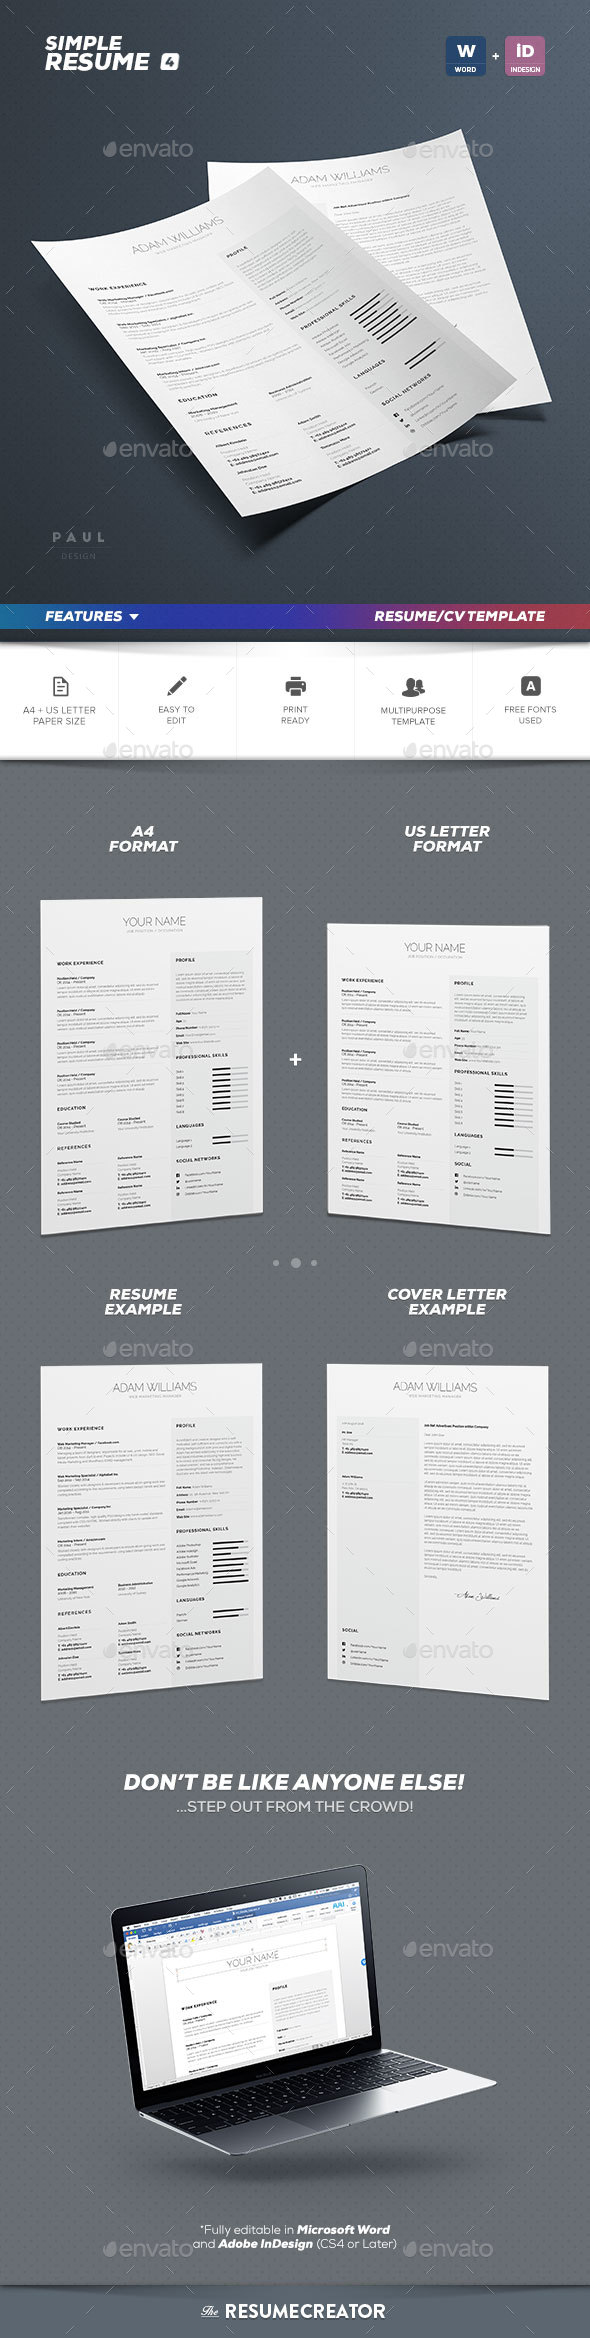 Simple Resume/Cv Volume 4